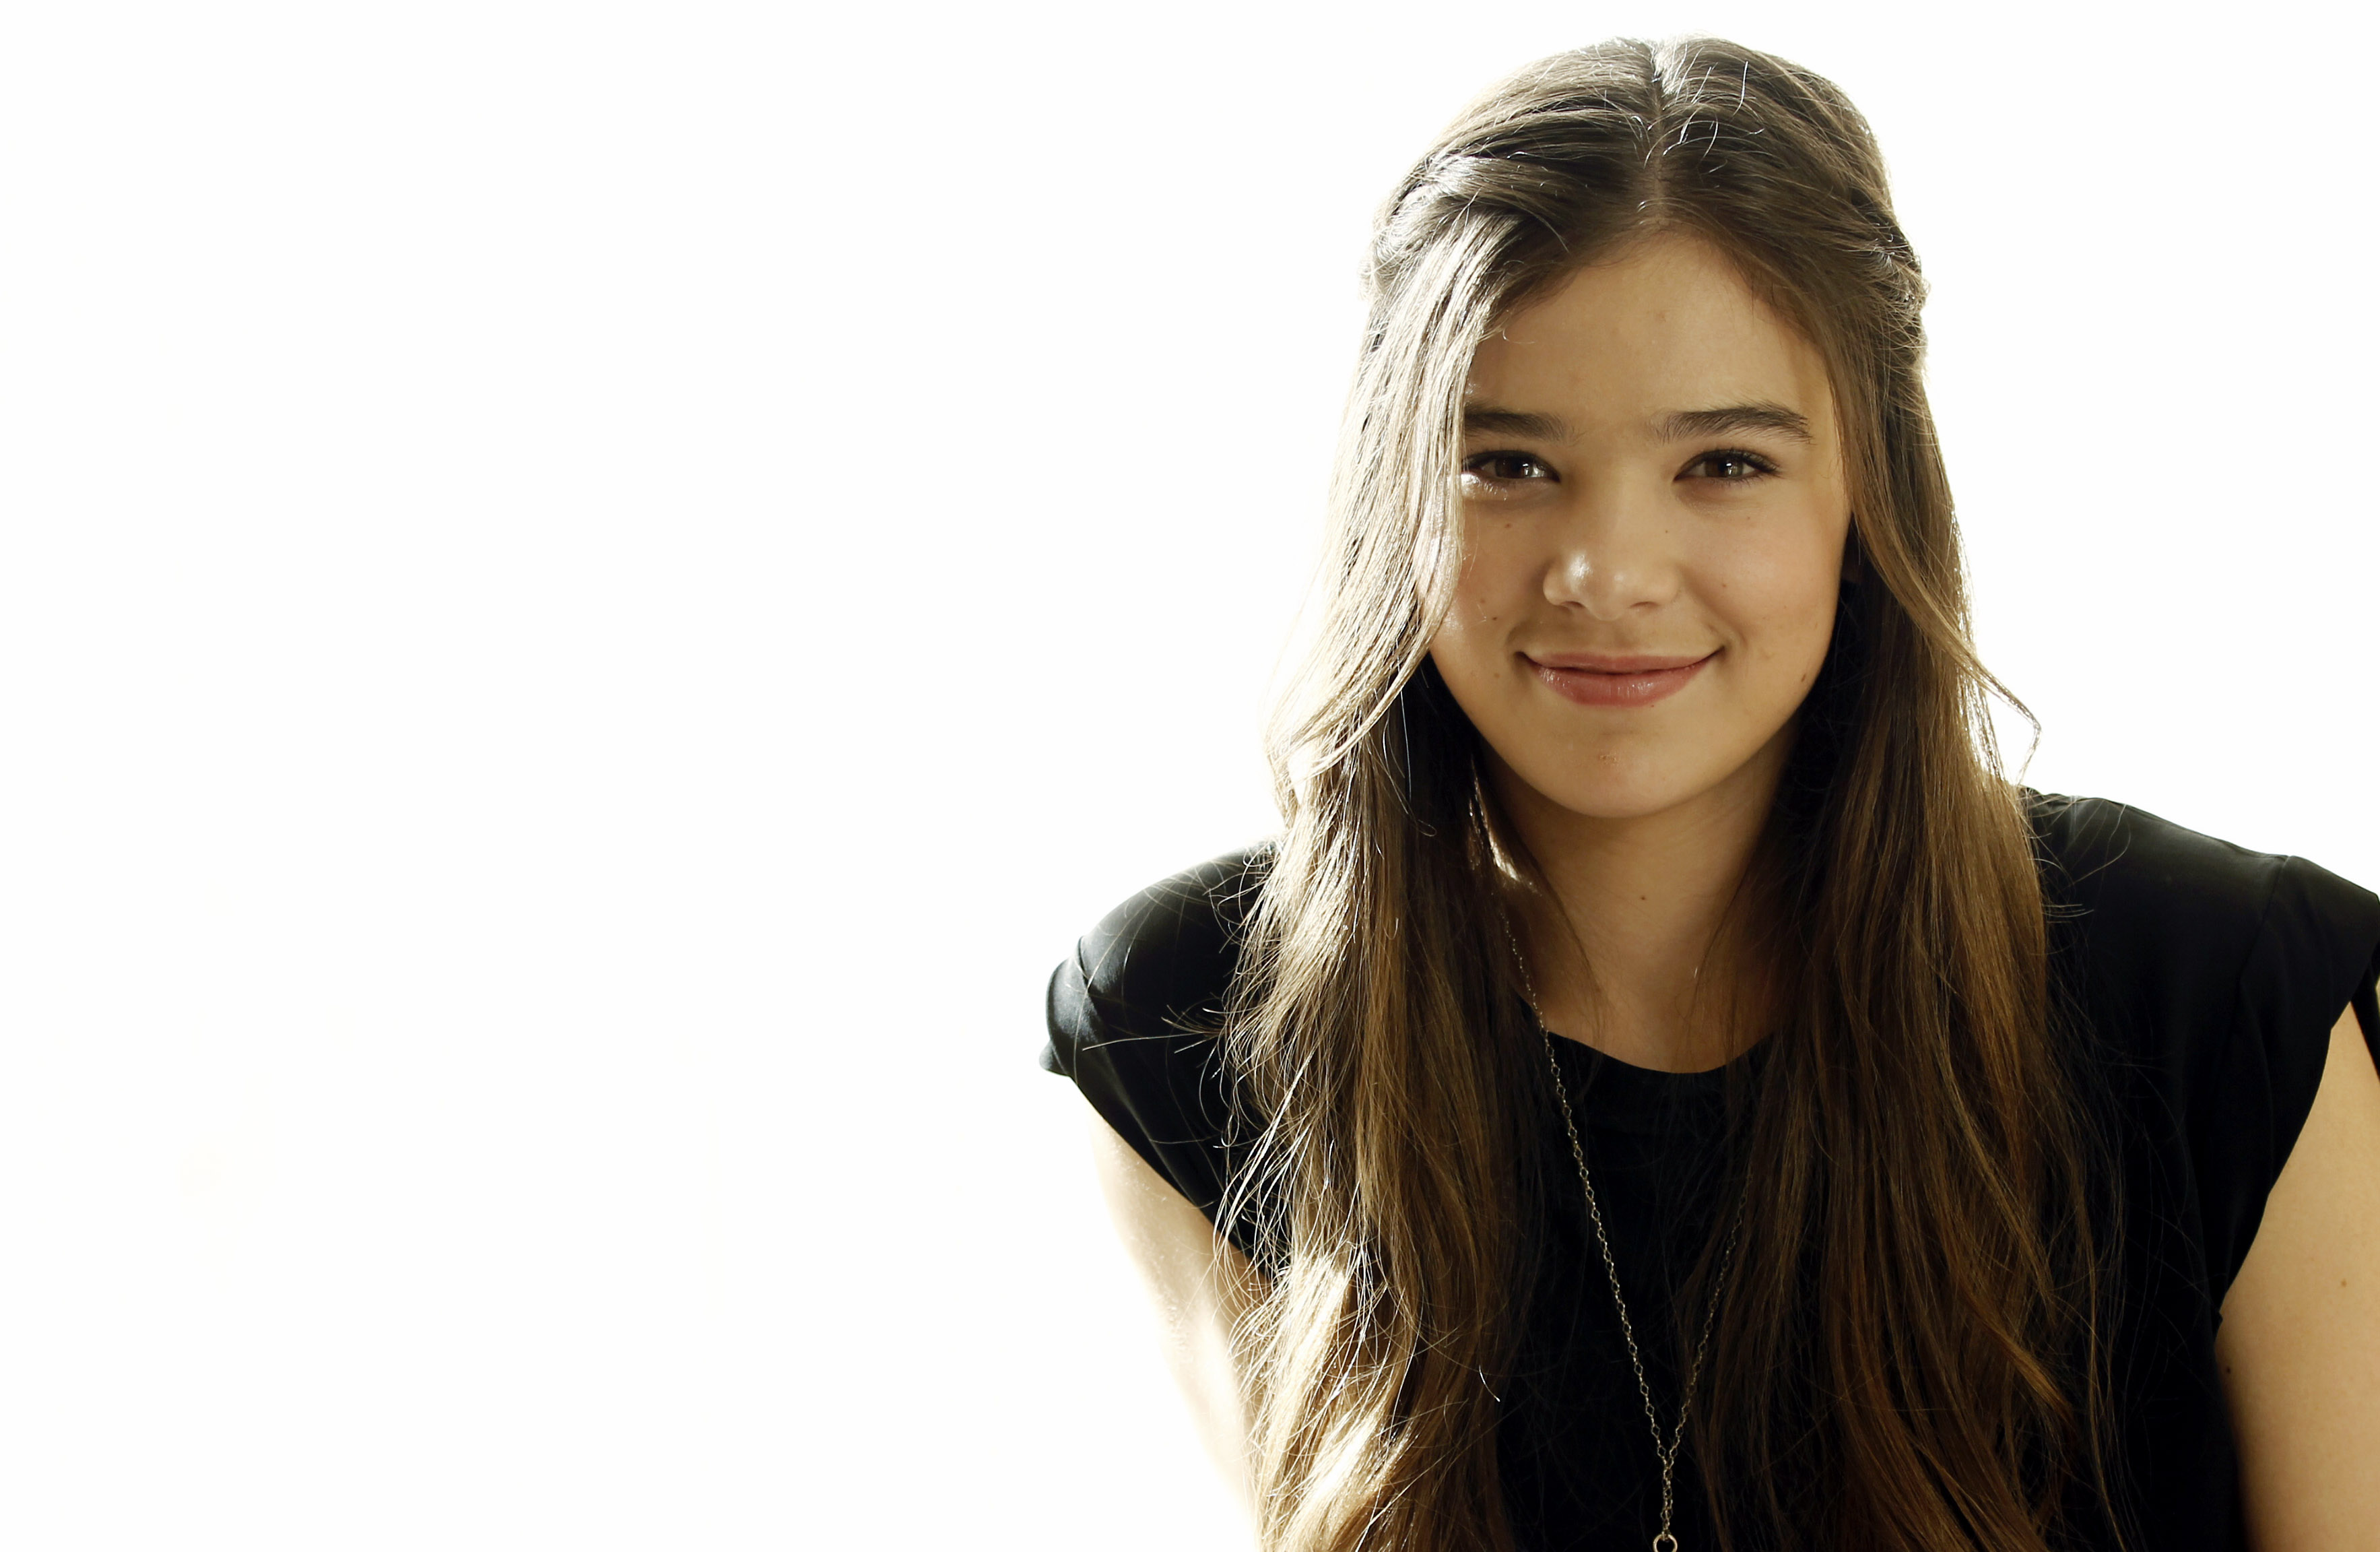 Cute Girl Smiling Wallpaper 9 Hd Hailee Steinfeld Wallpapers